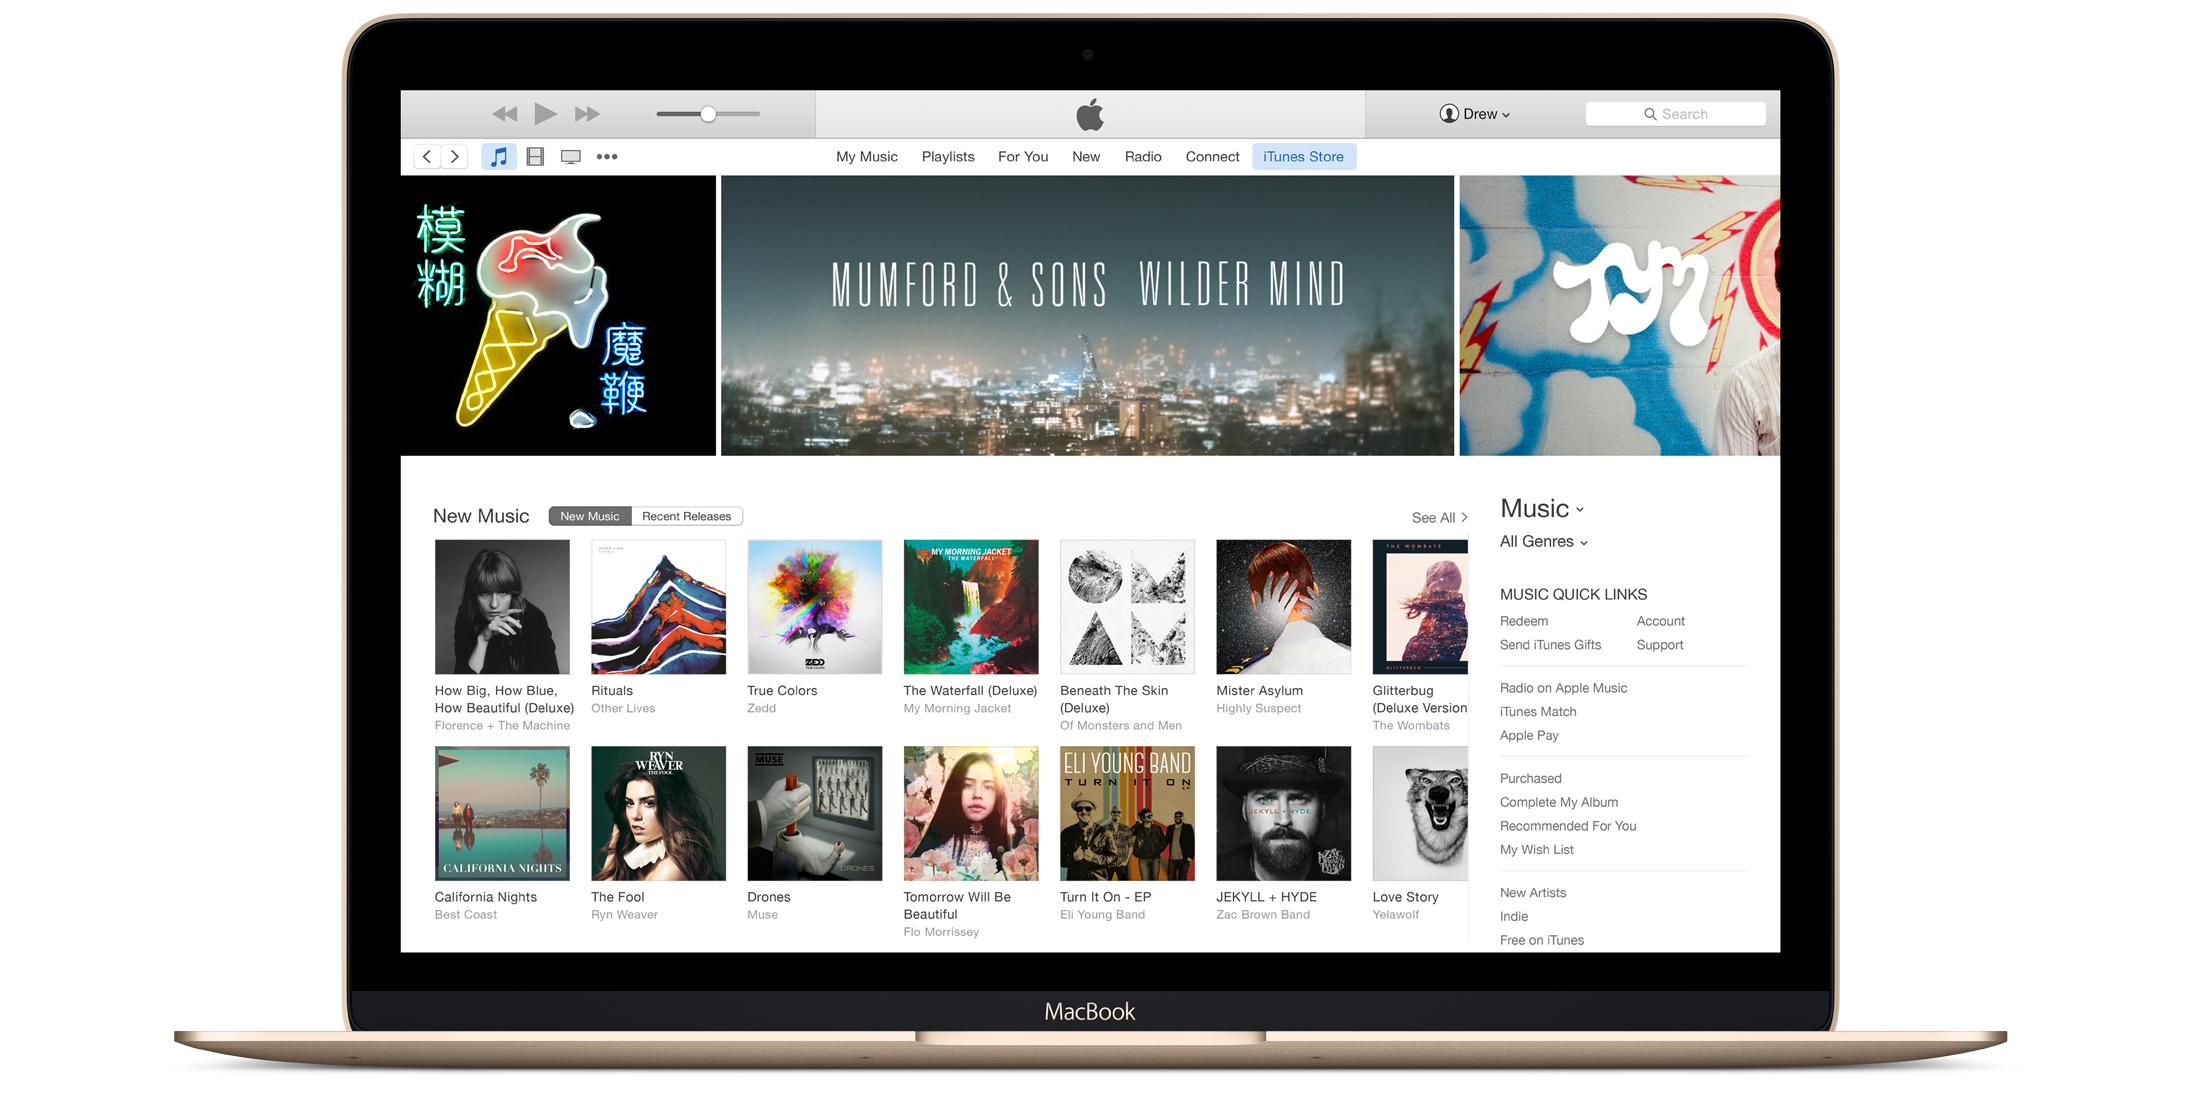 Apple Releases Minor Update to iTunes on Mac and Windows - 3uTools